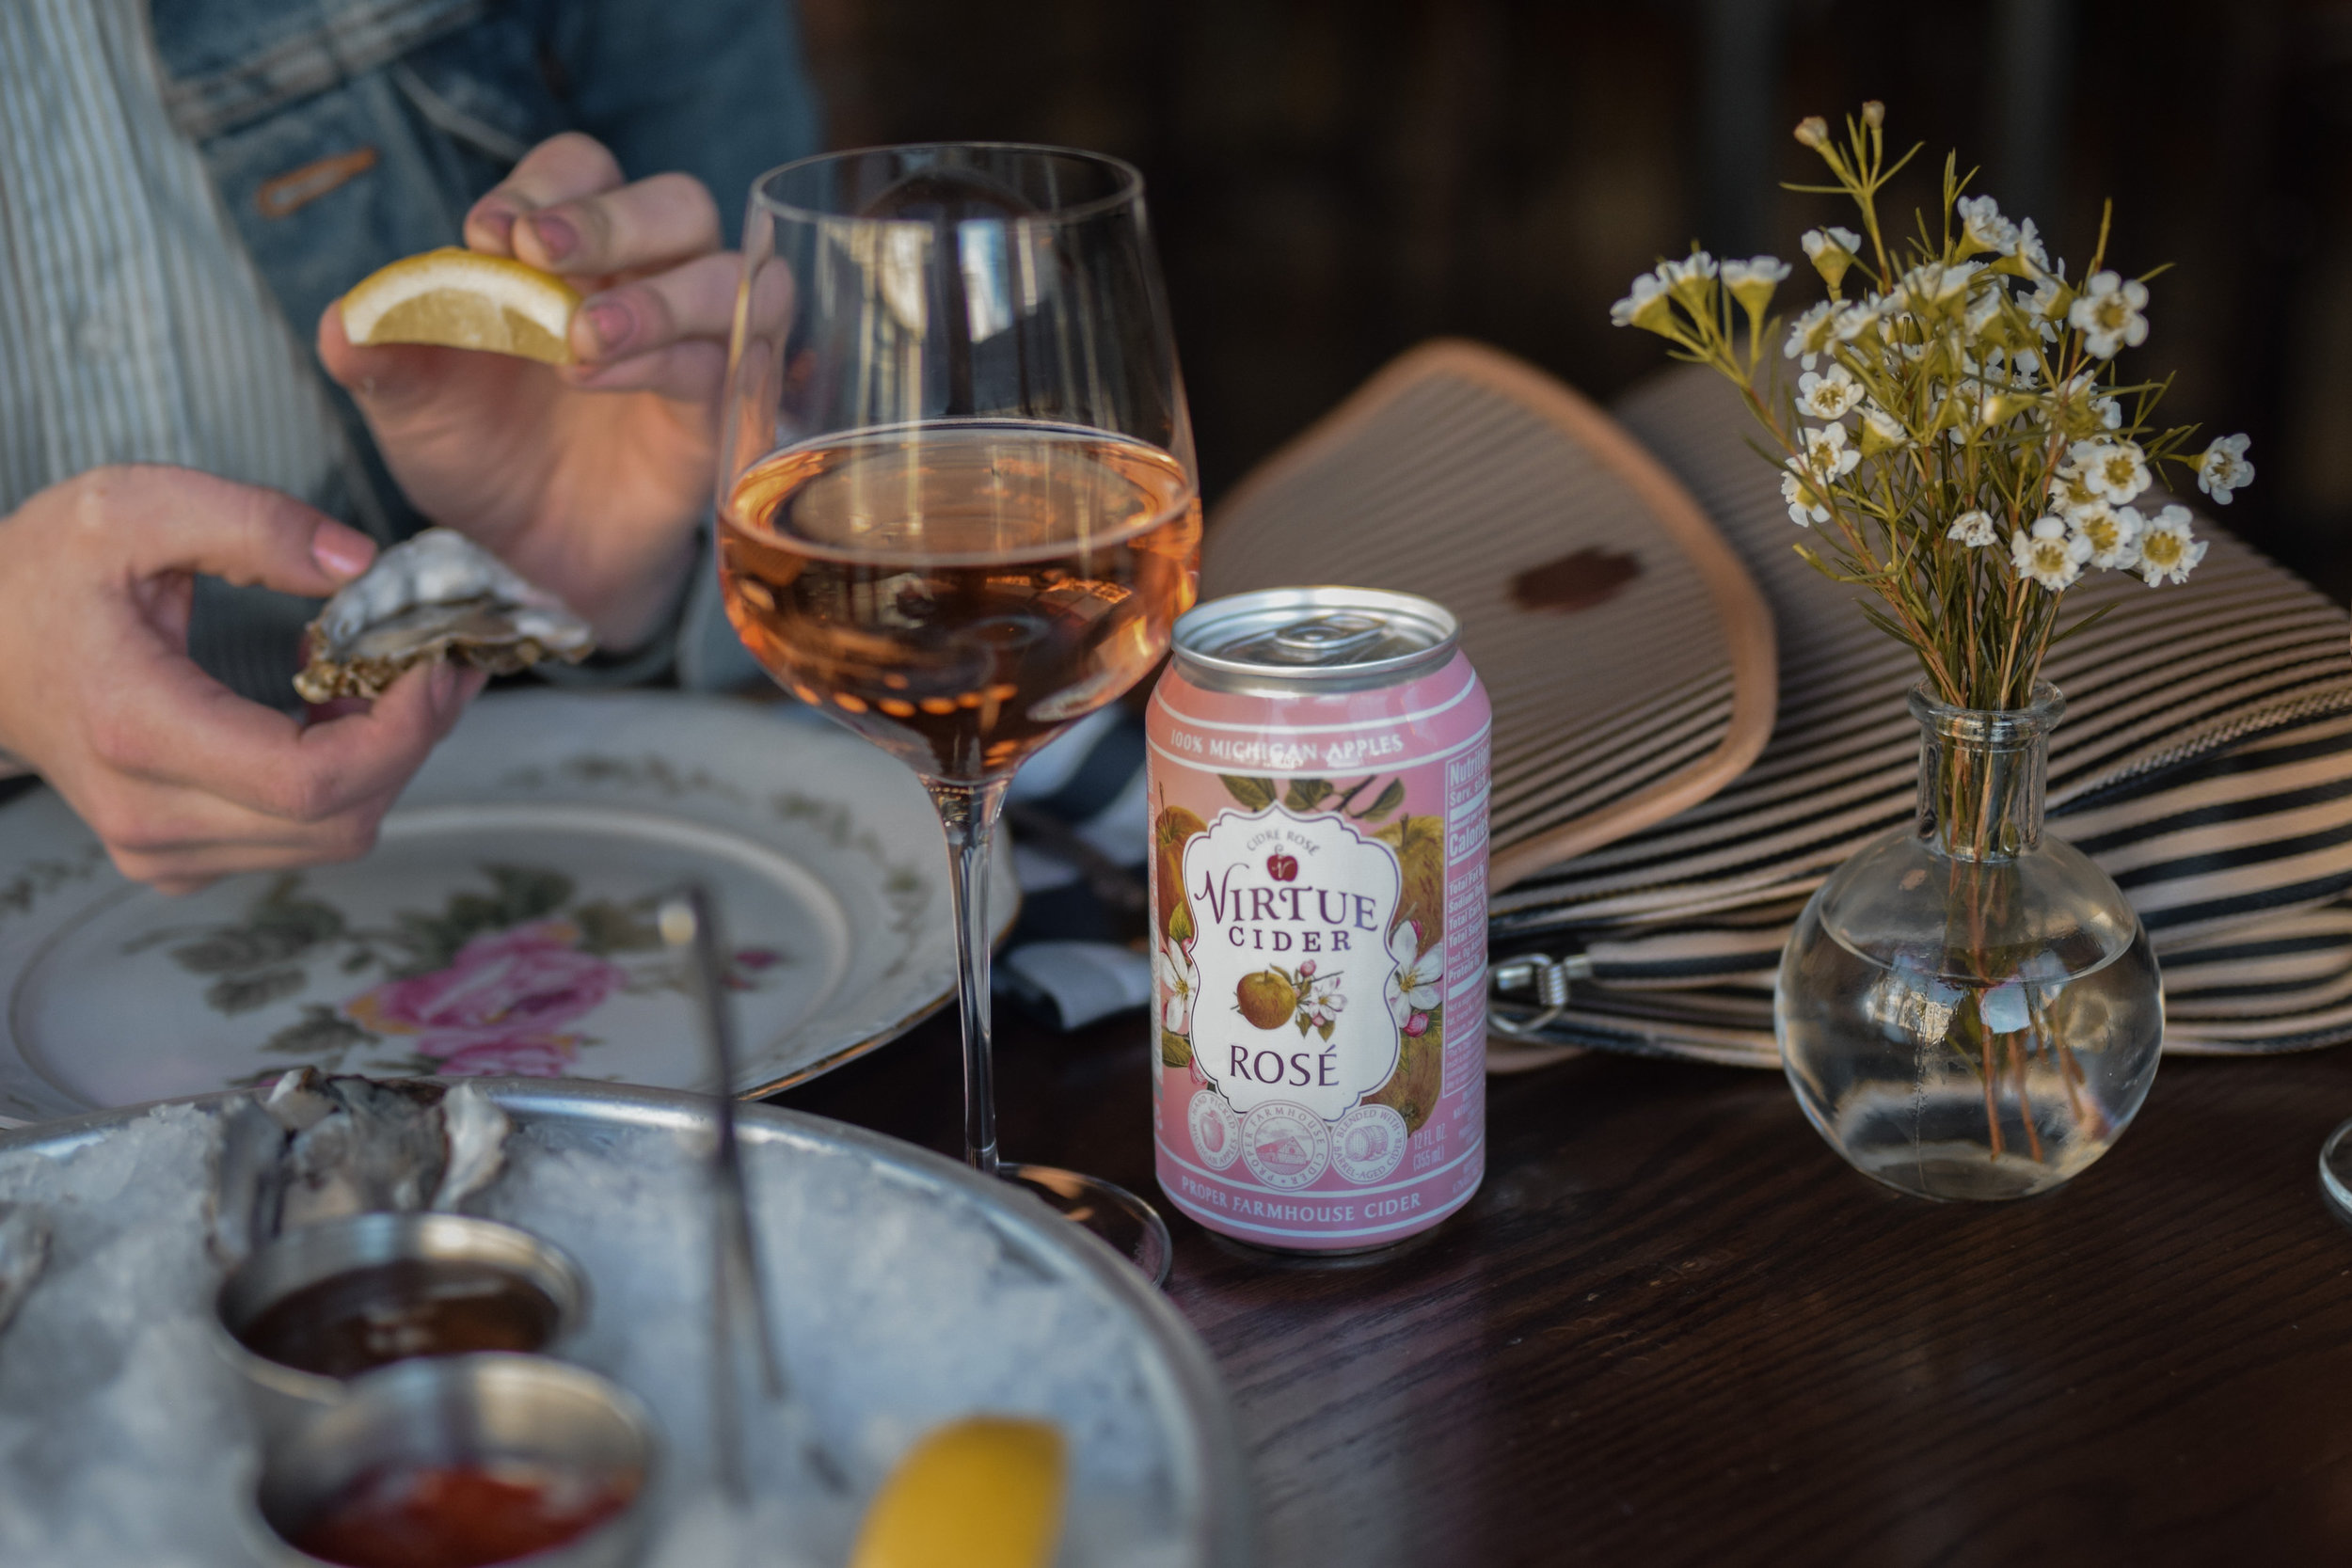 Virtue Cider Rosé paired with Oysters and Rosé Mignonette